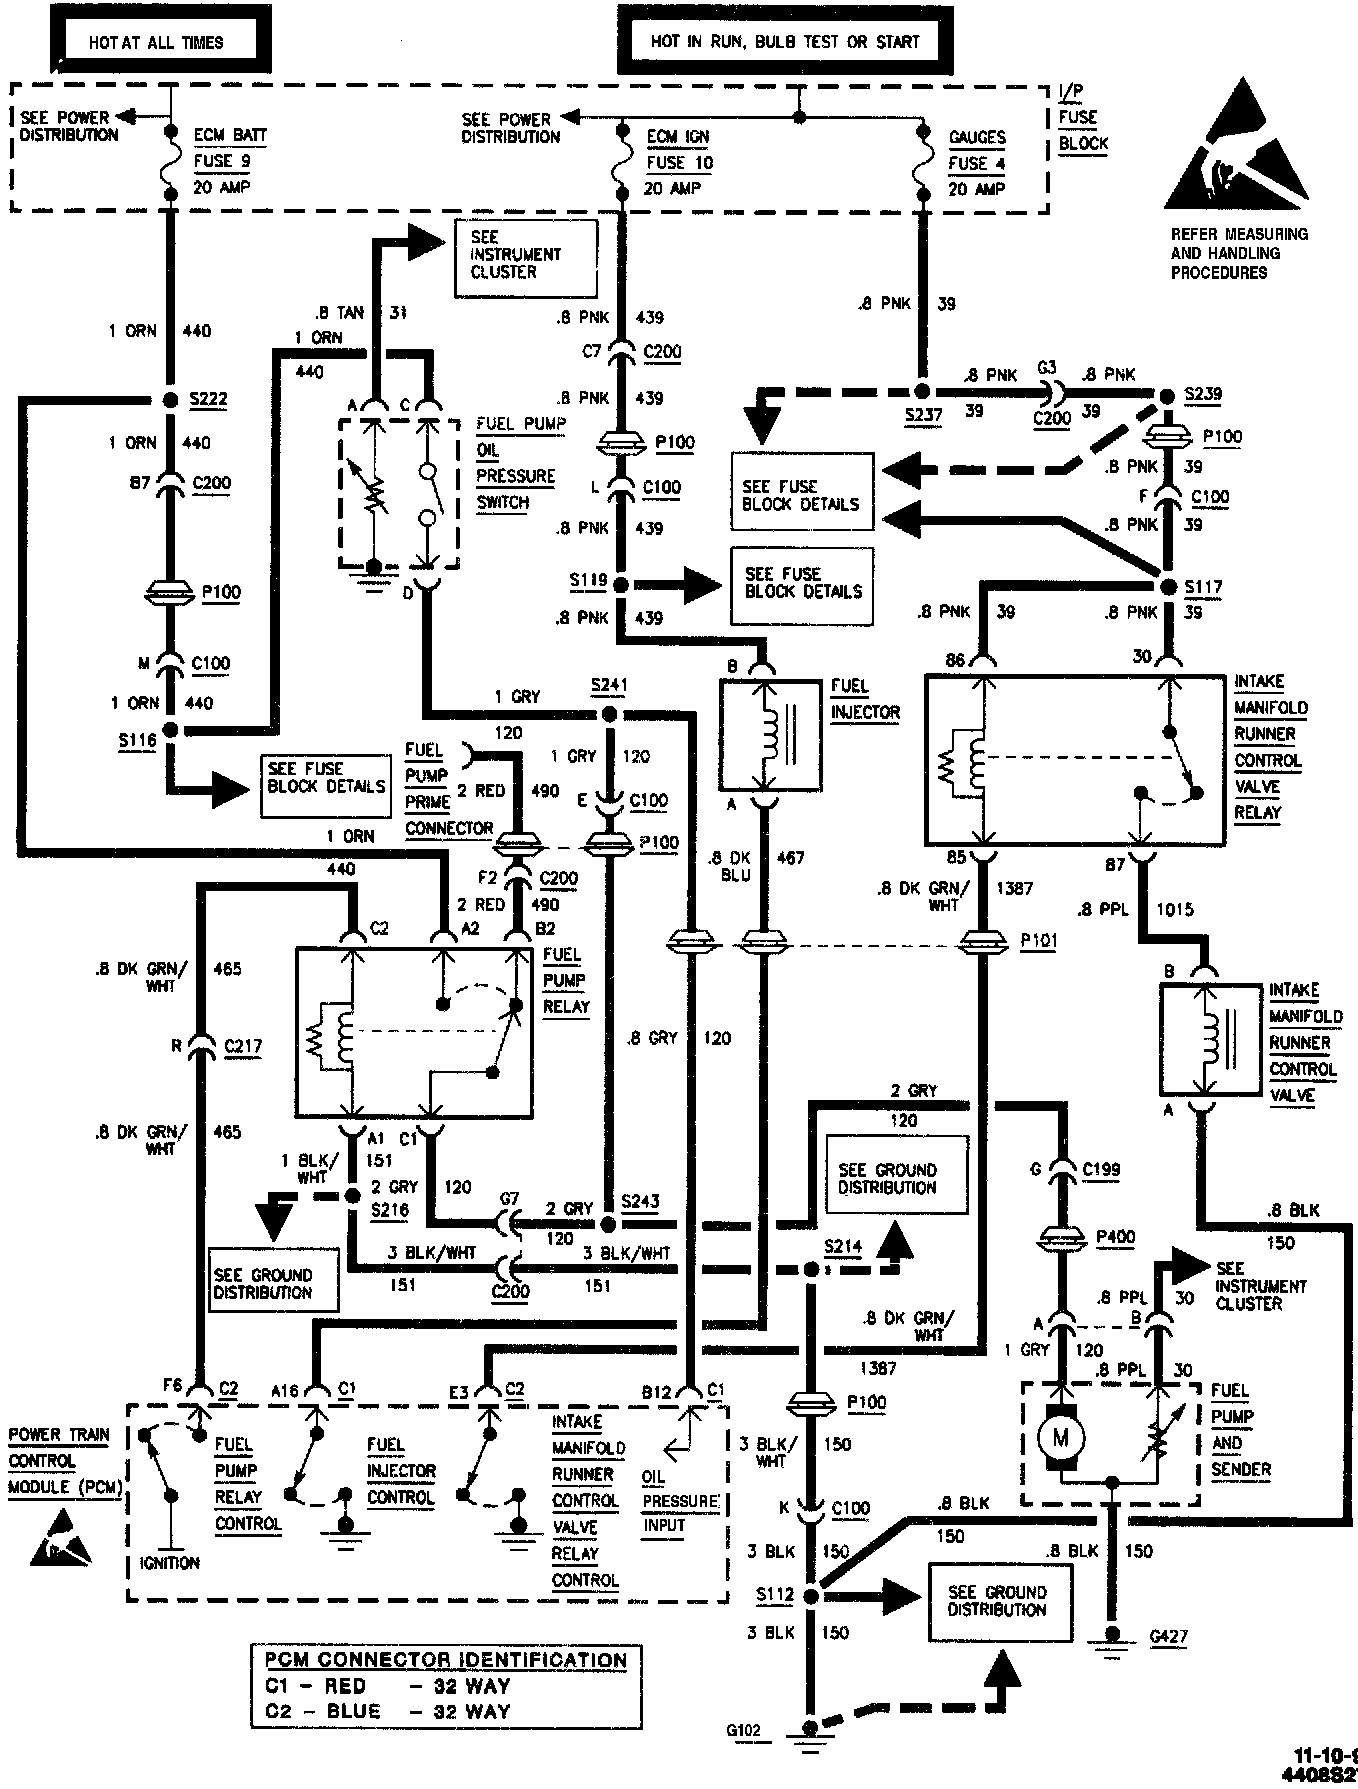 4 3 Vortec Engine Firing order Diagram 1998 Chevy S10 Engine Diagram Get Free Image About Wiring Diagram Of 4 3 Vortec Engine Firing order Diagram